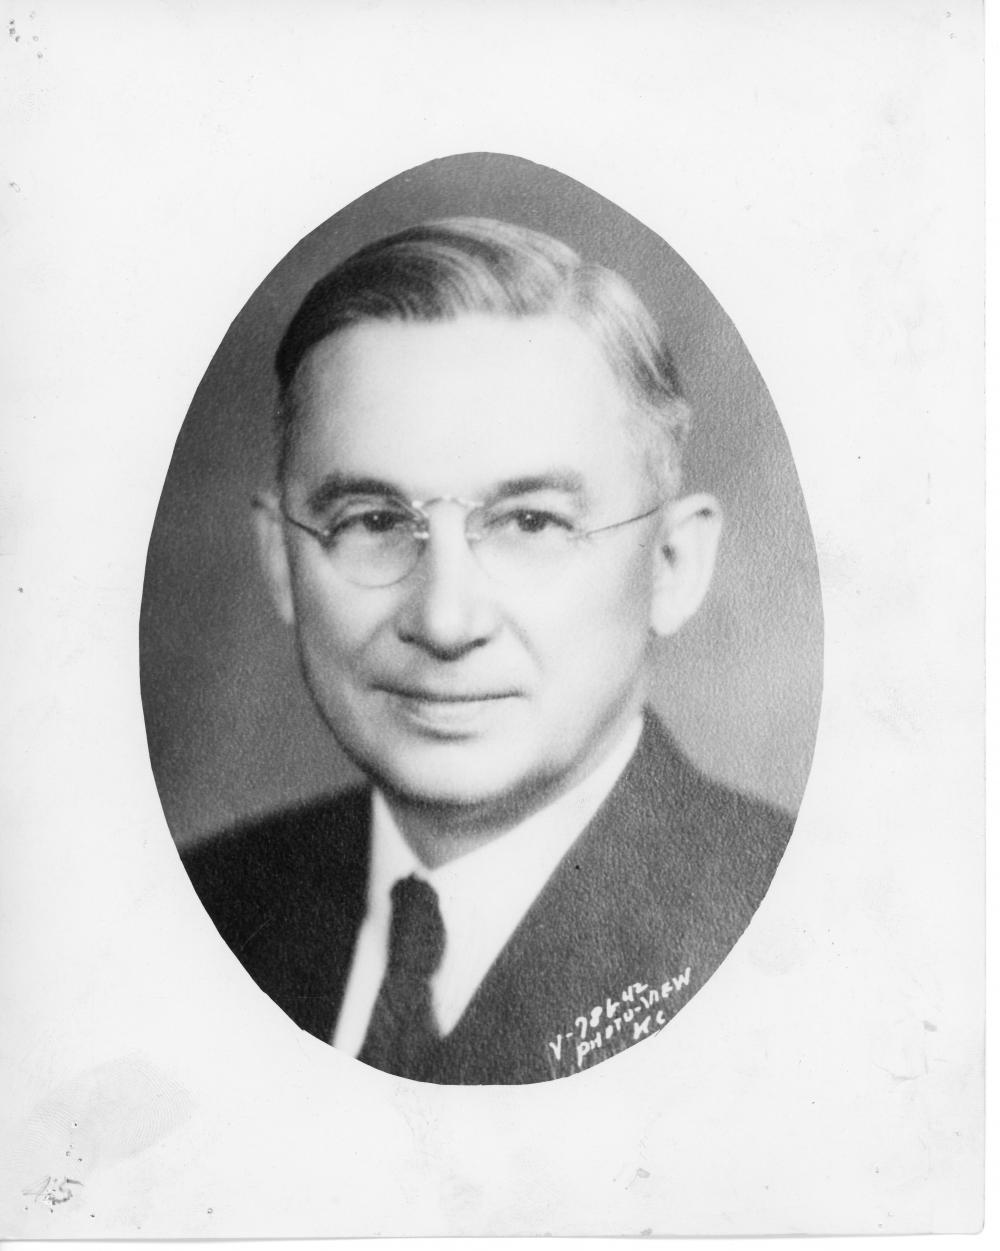 John B. Gage won the mayoral election of 1940